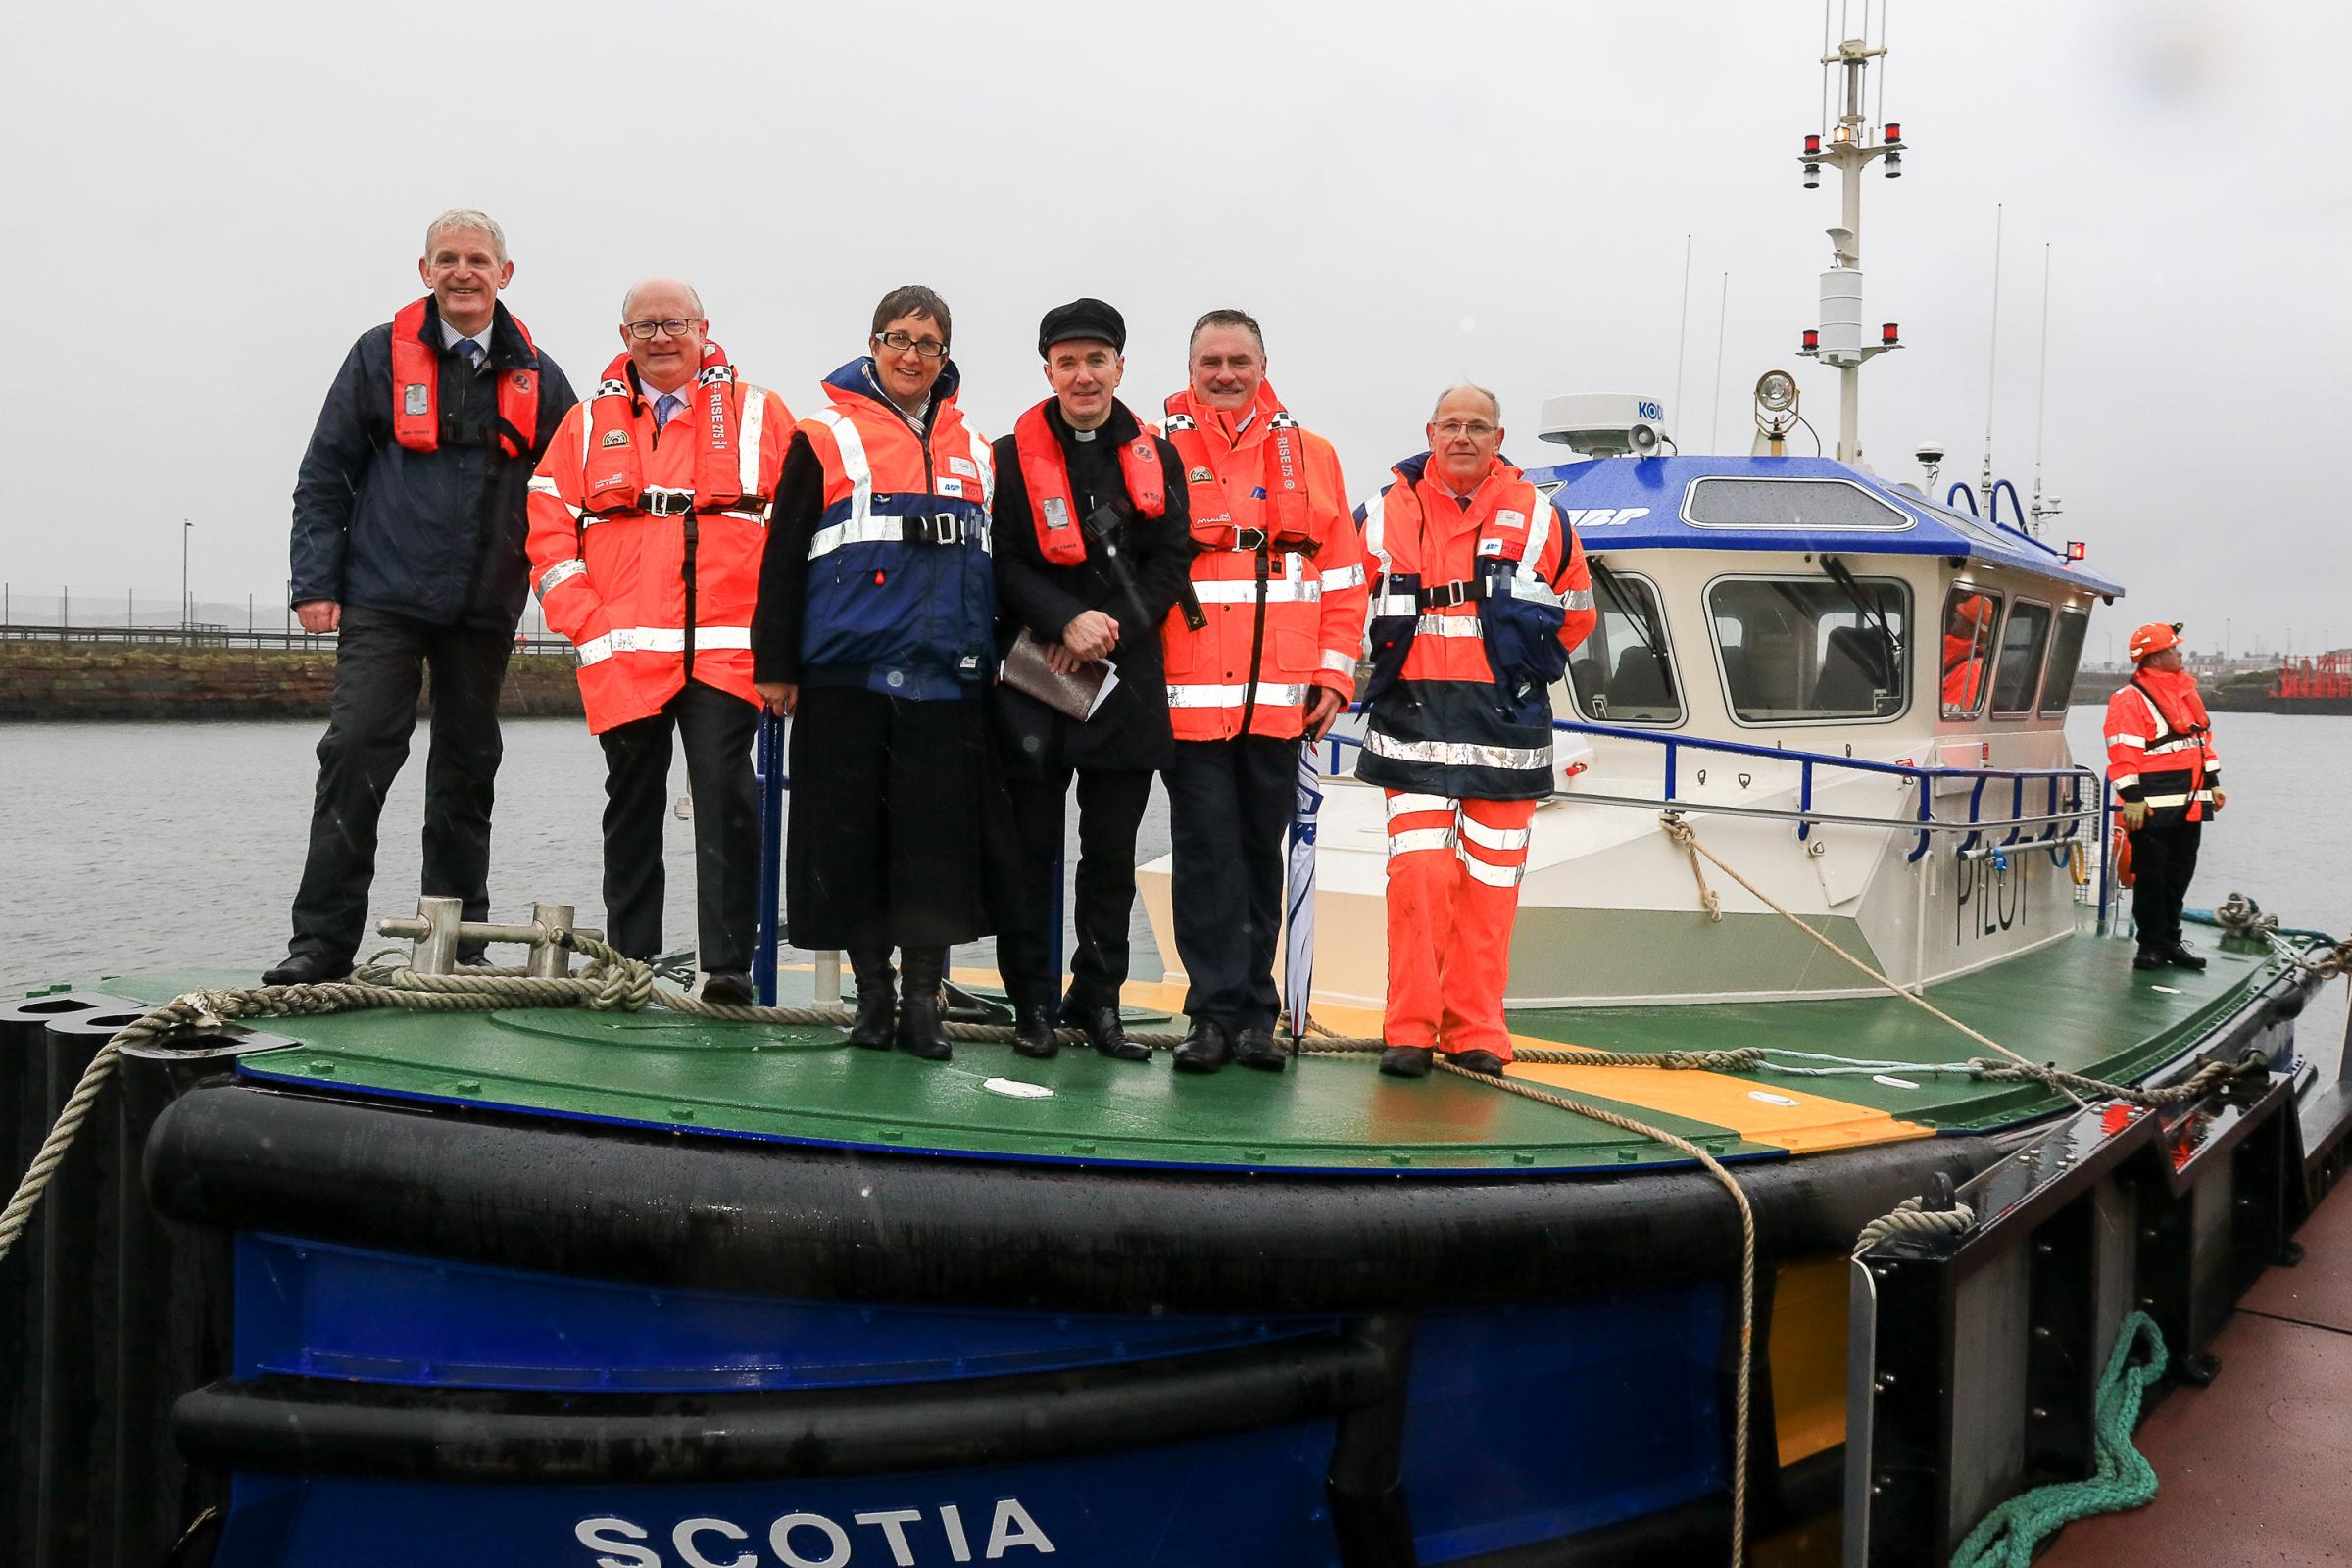 Ayr and Troon ports welcome new vessel